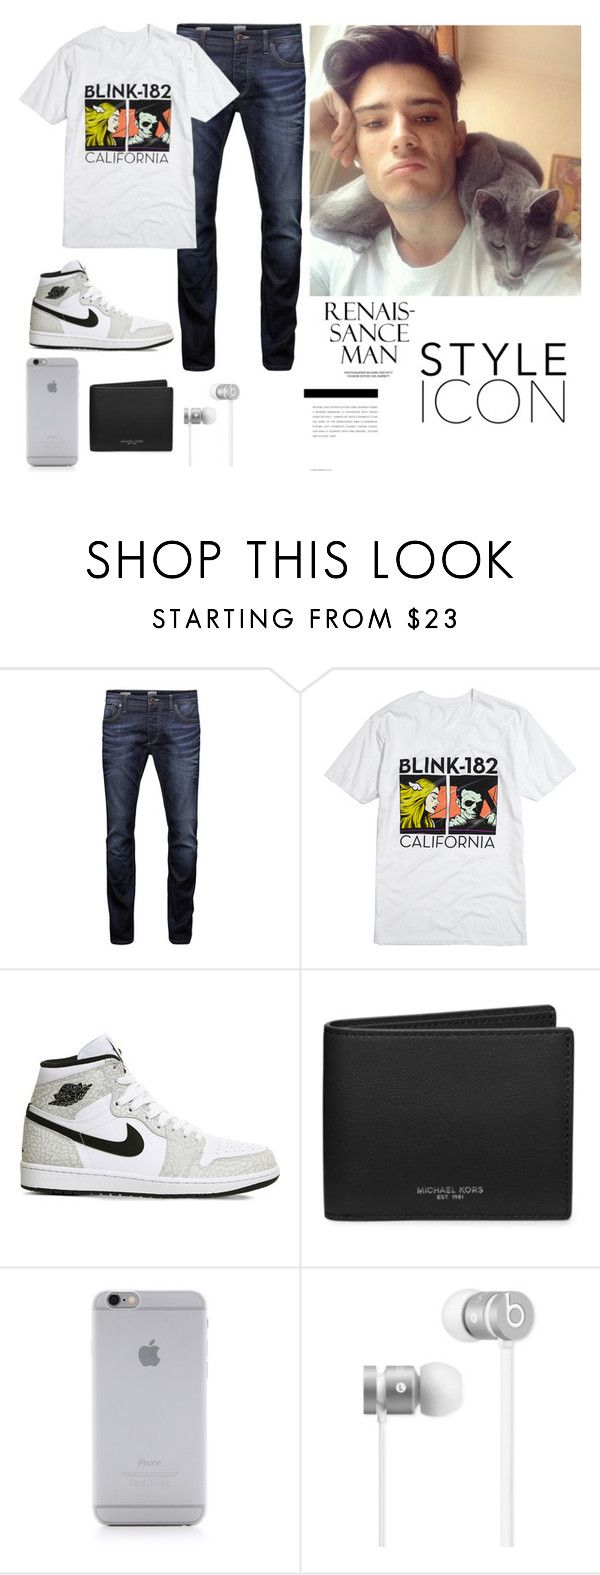 """""""_BLINK_182_"""" by kprzy12 ❤ liked on Polyvore featuring Jack & Jones, NIKE, Michael Kors, Native Union, Beats by Dr. Dre, men's fashion and menswear"""